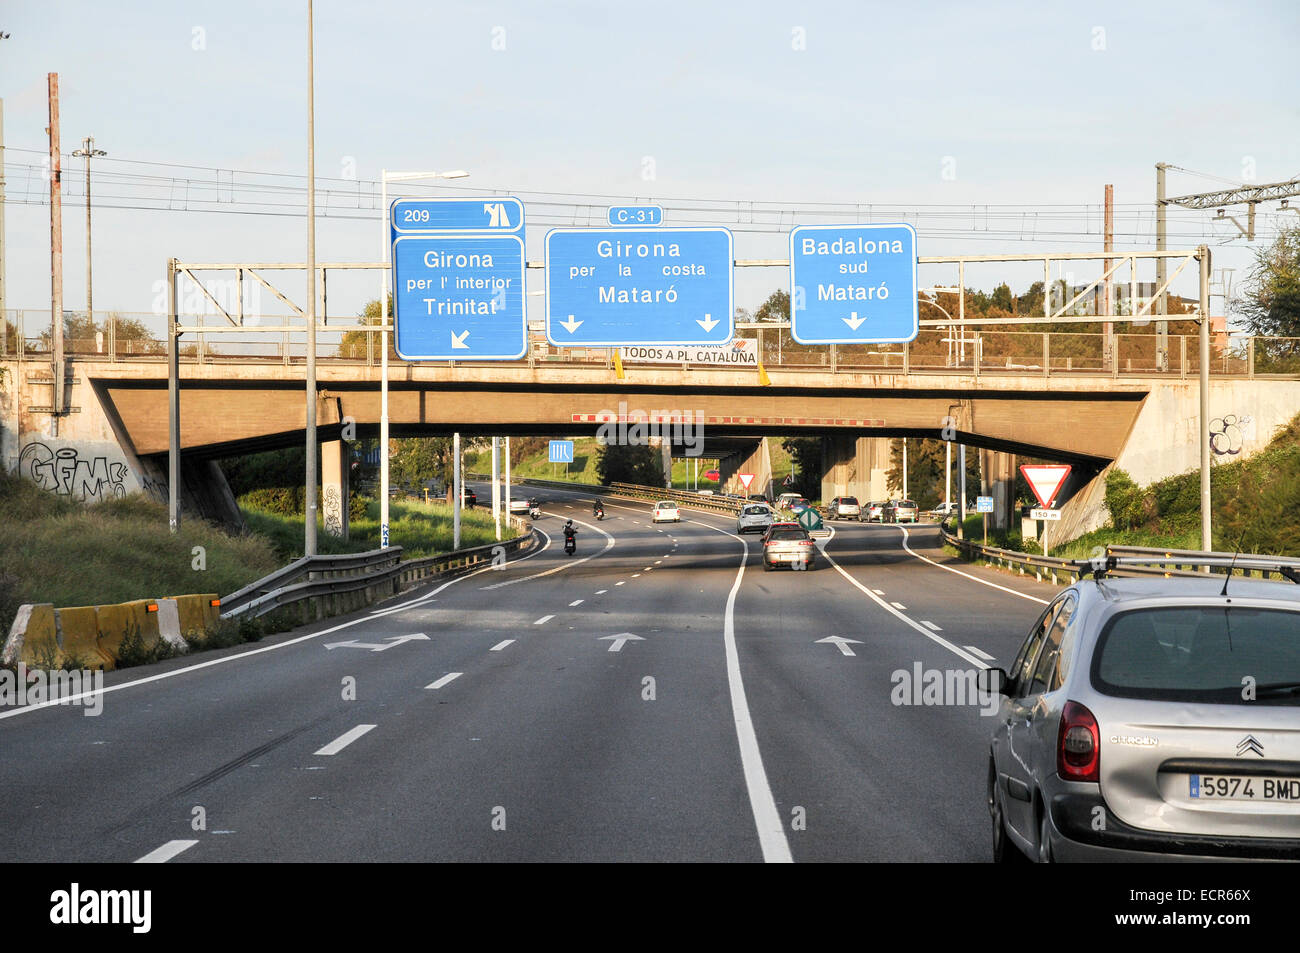 Spanish Highway Photographed in Barcelona Catalonia, Spain Stock Photo